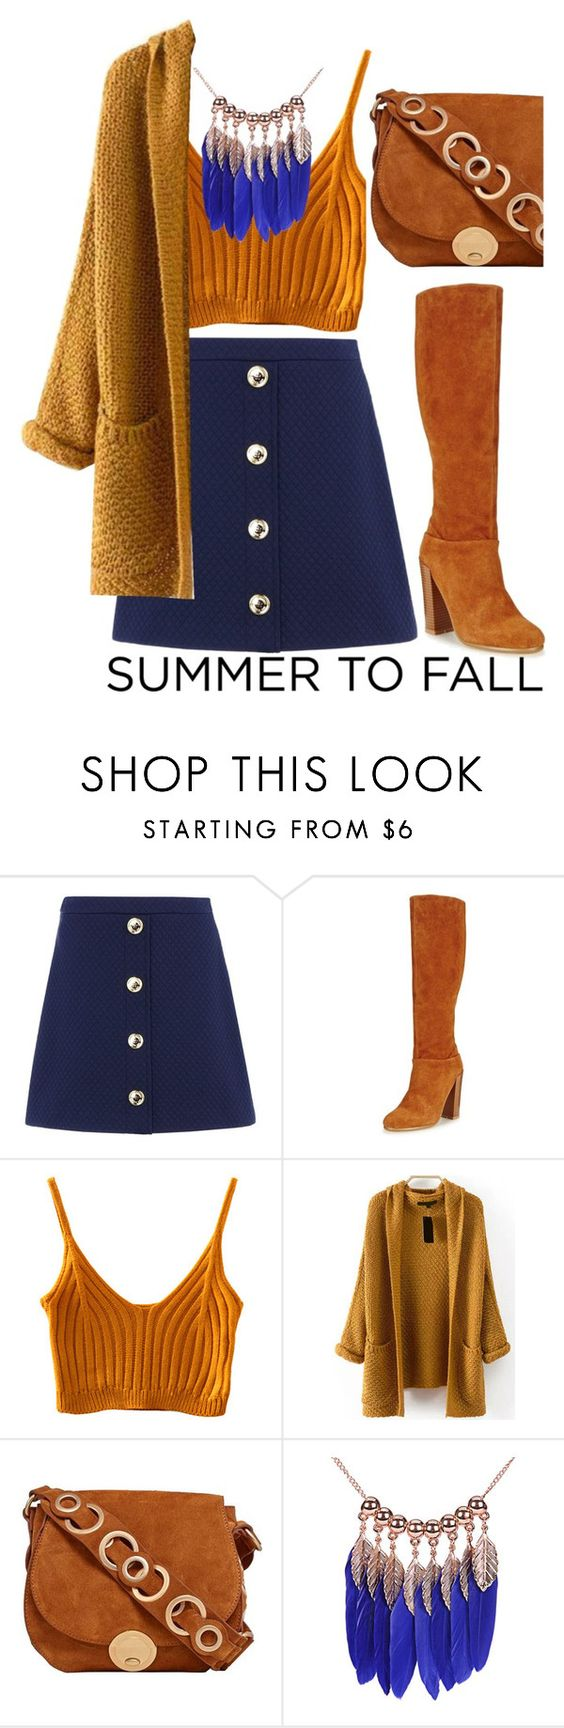 """Untitled #375"" by rockabillygypsy ❤ liked on Polyvore featuring Love Moschino, WithChic and Foley + Corinna"